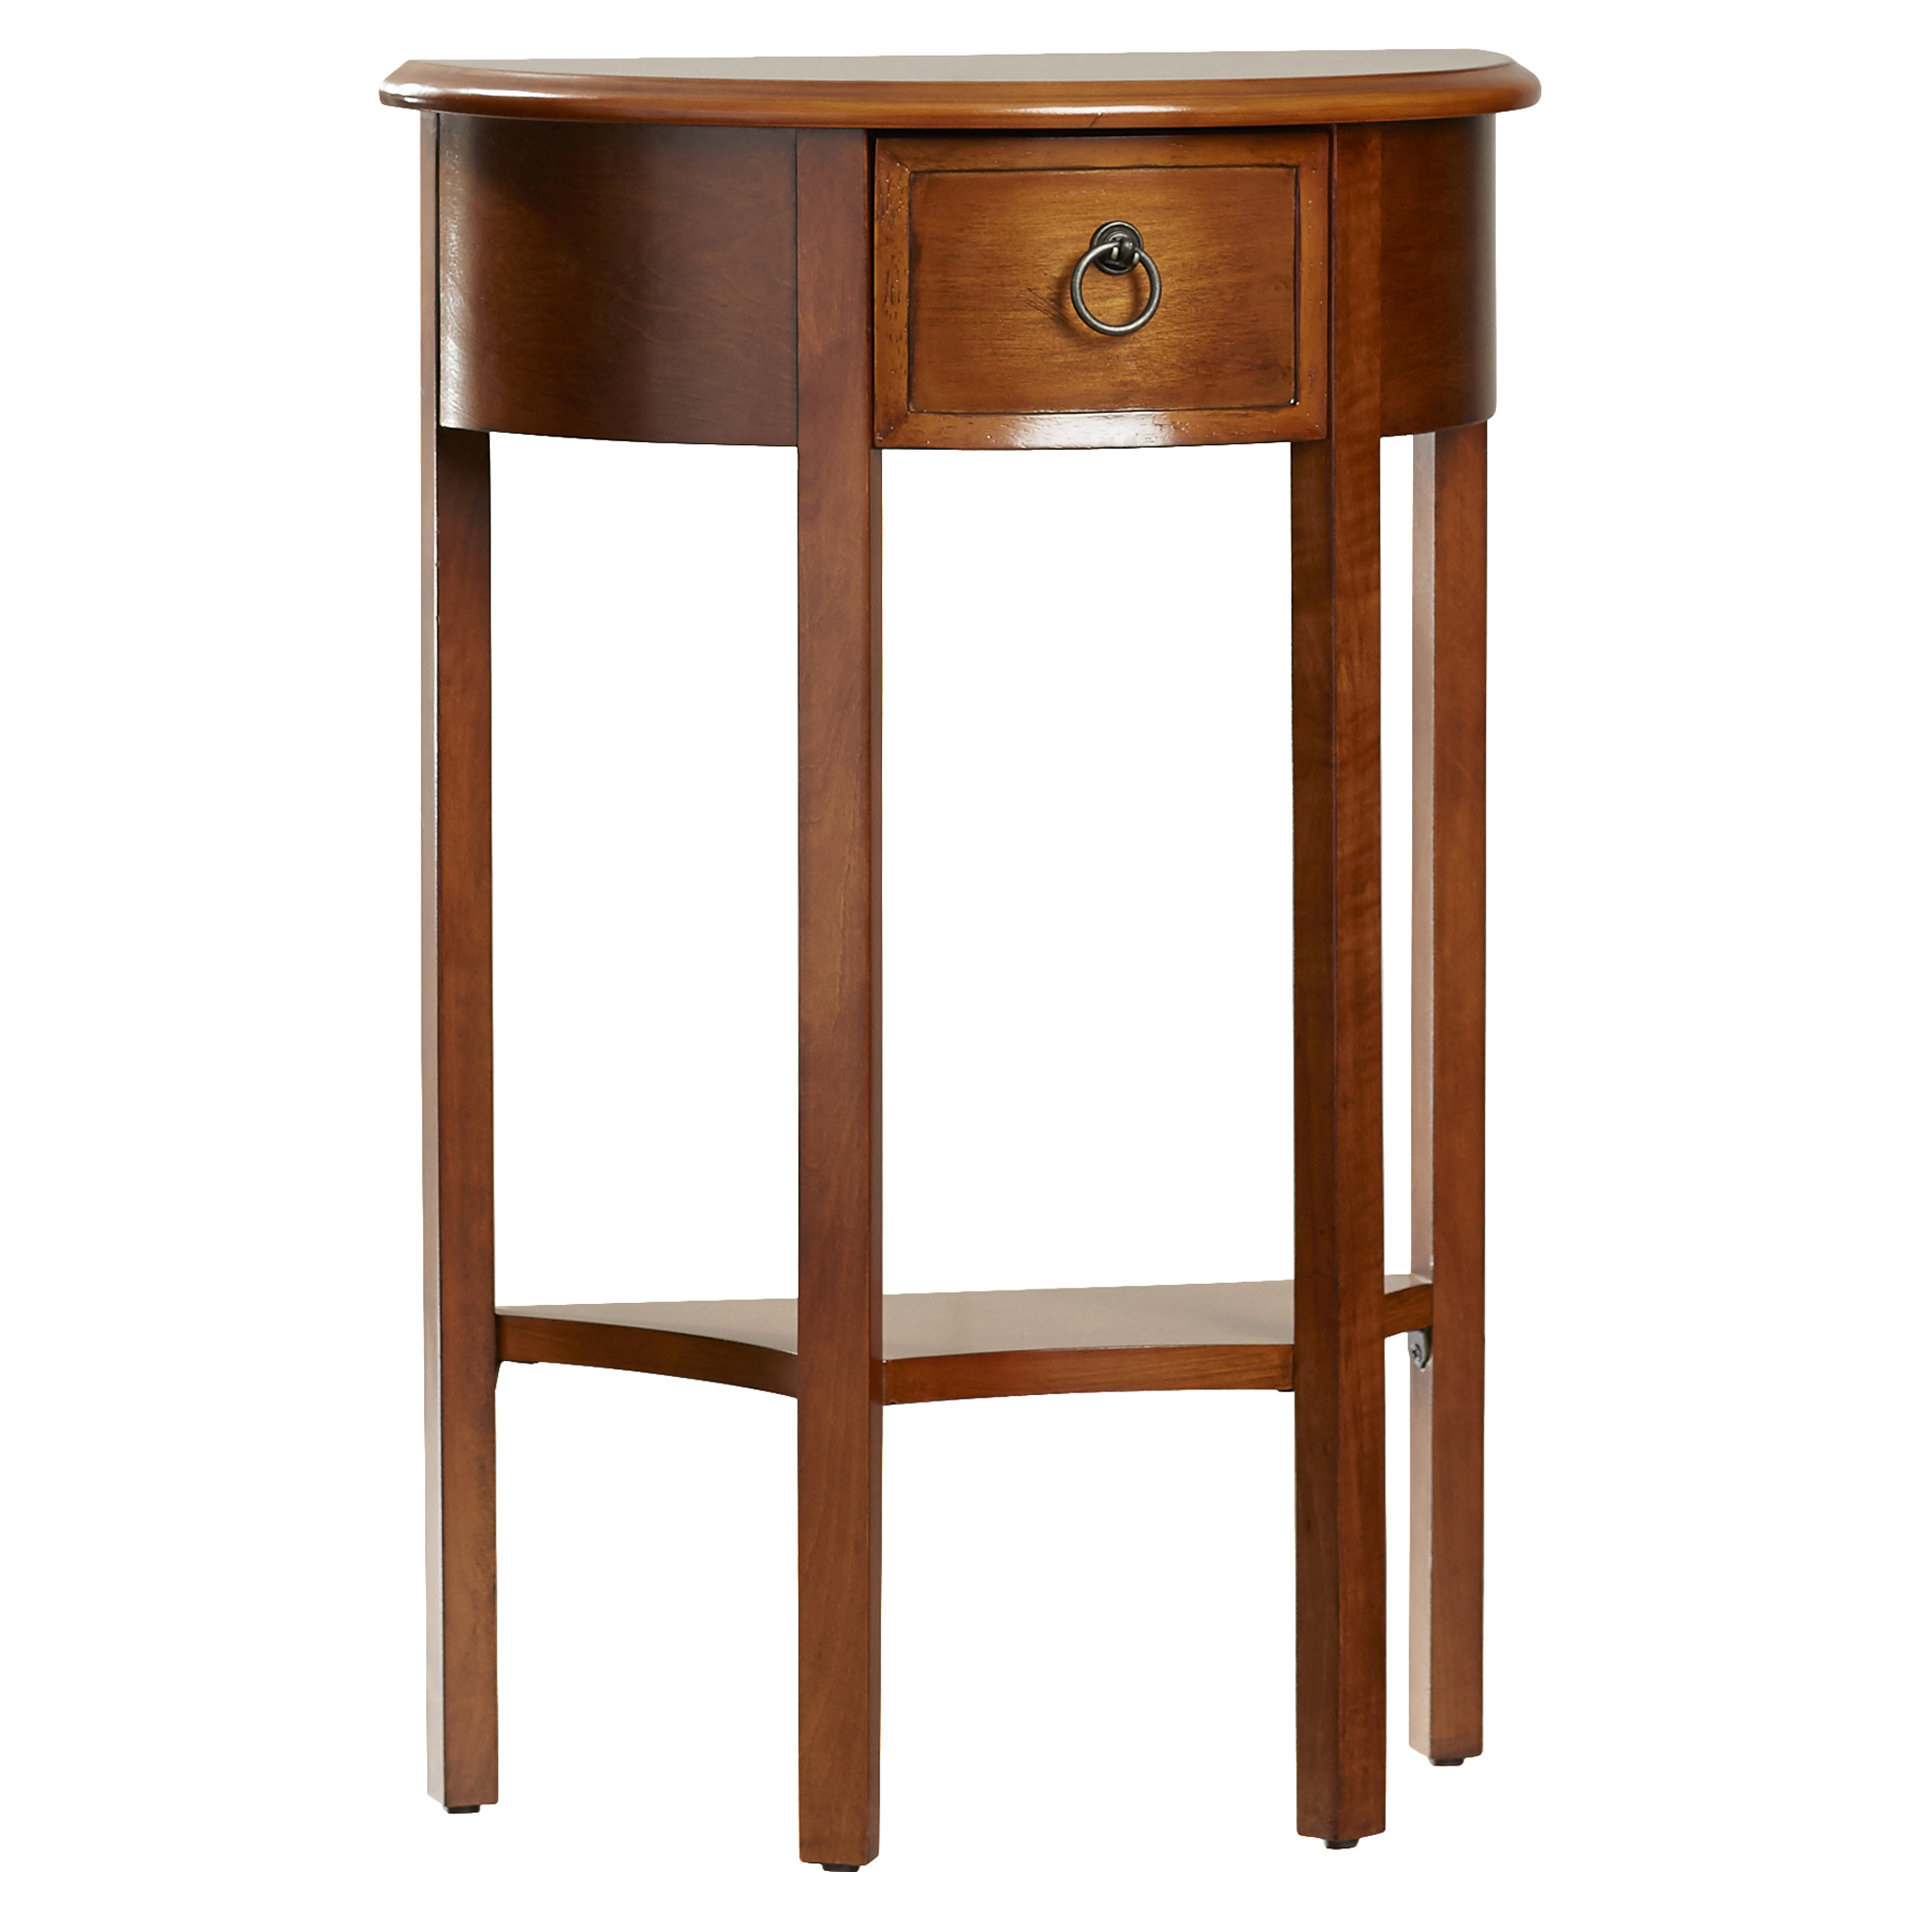 Small Corner Console Table | Wayfair Regarding Layered Wood Small Square Console Tables (Gallery 8 of 20)